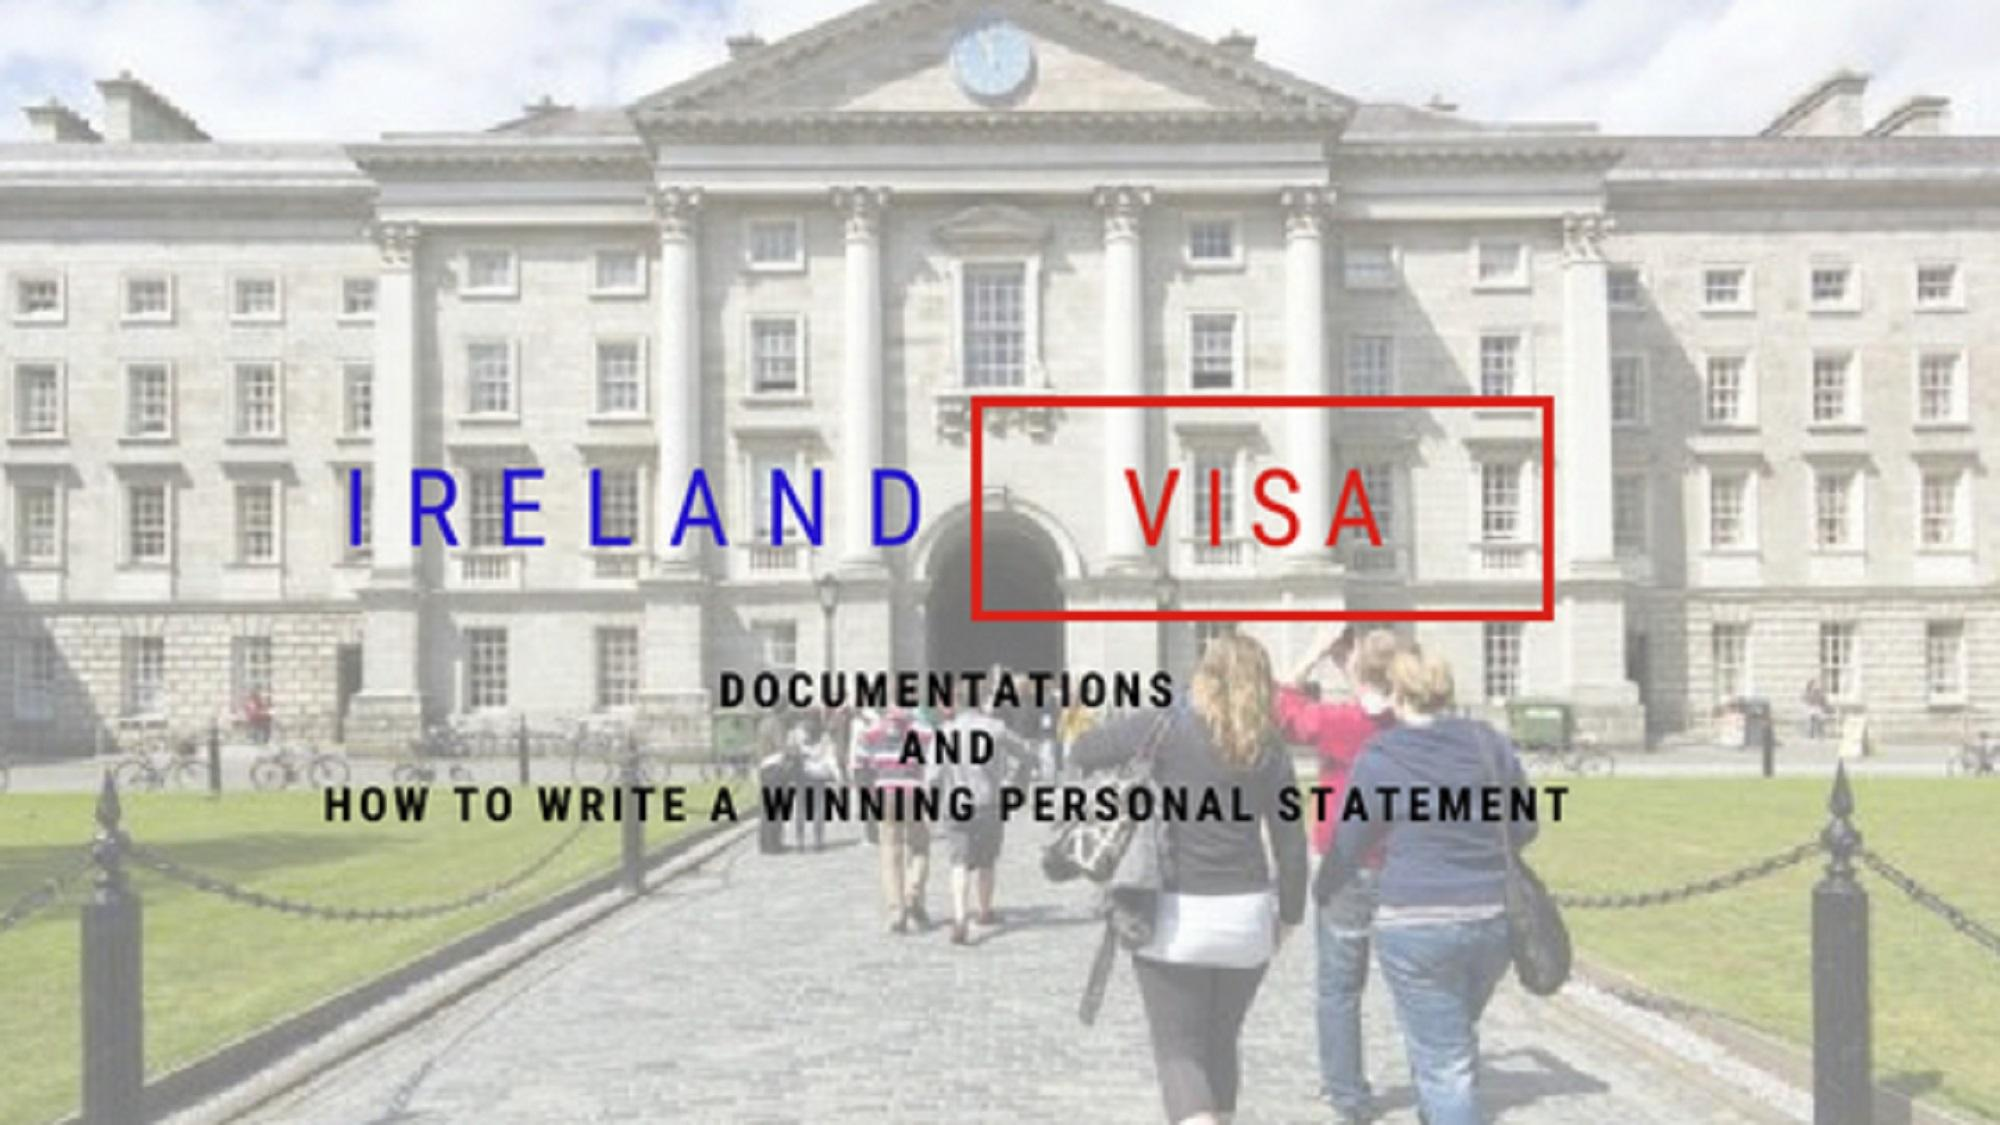 Ireland Study Visa Application: Documentations and How to write a winning Personal statement